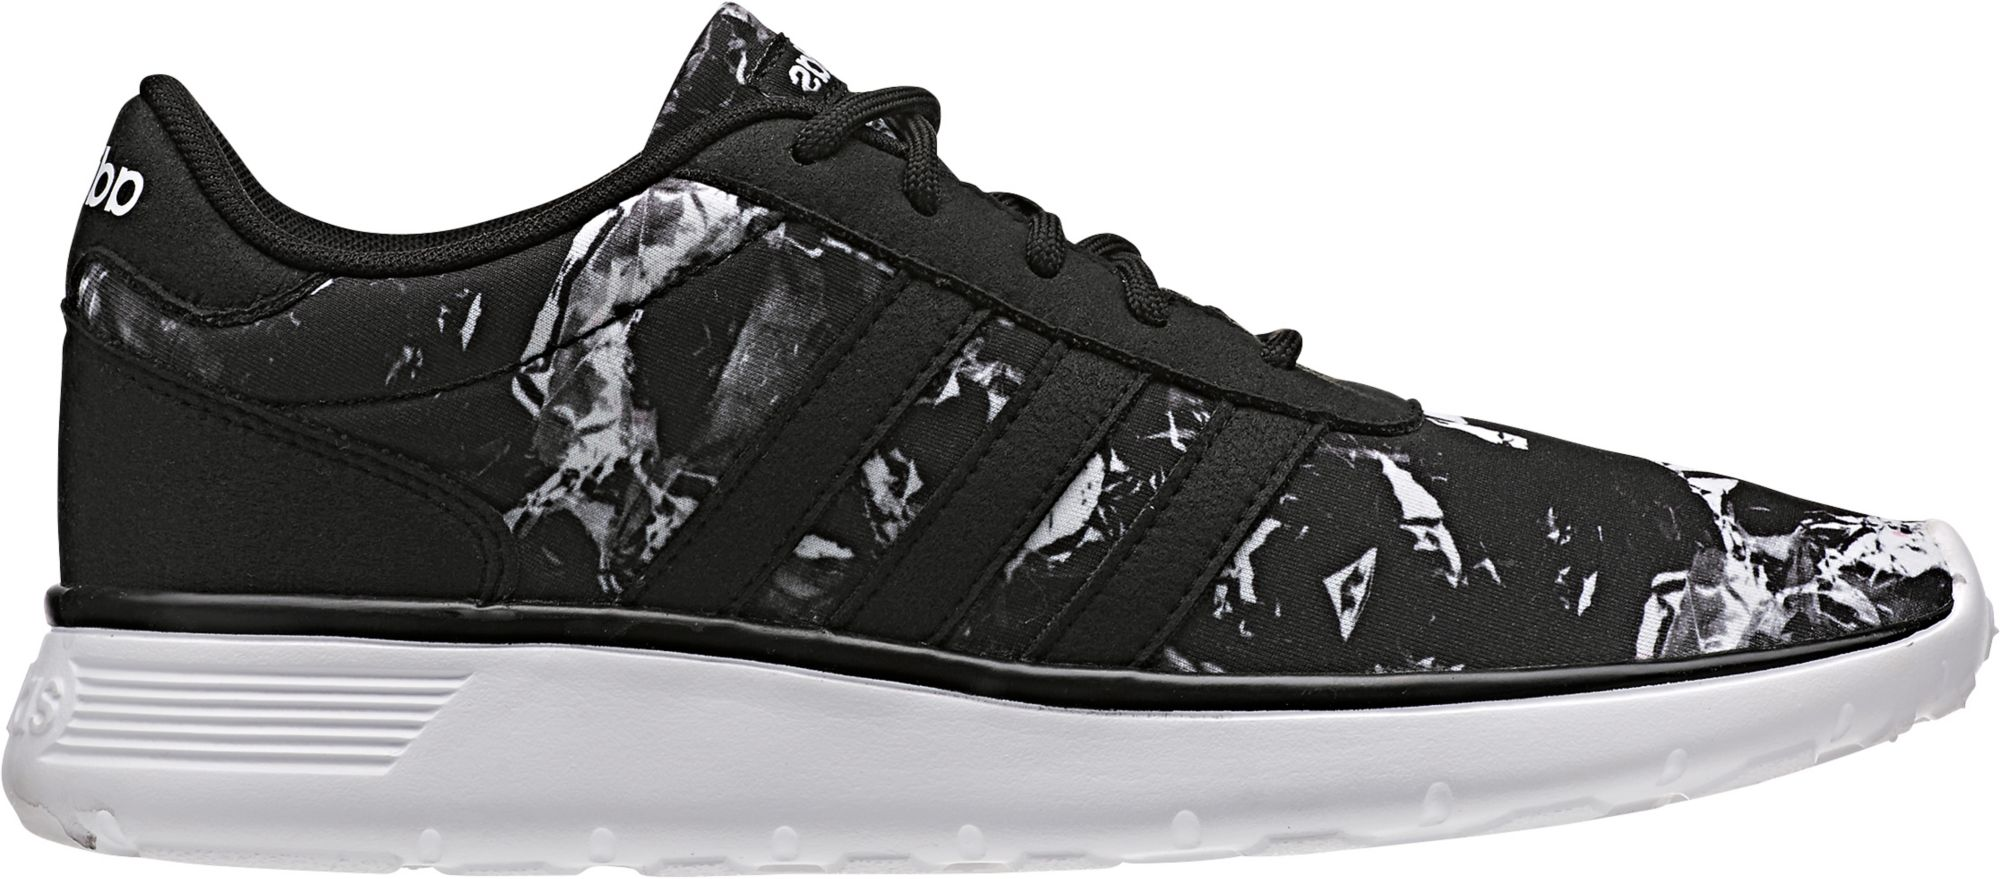 Adidas Shoes Women Black Neo